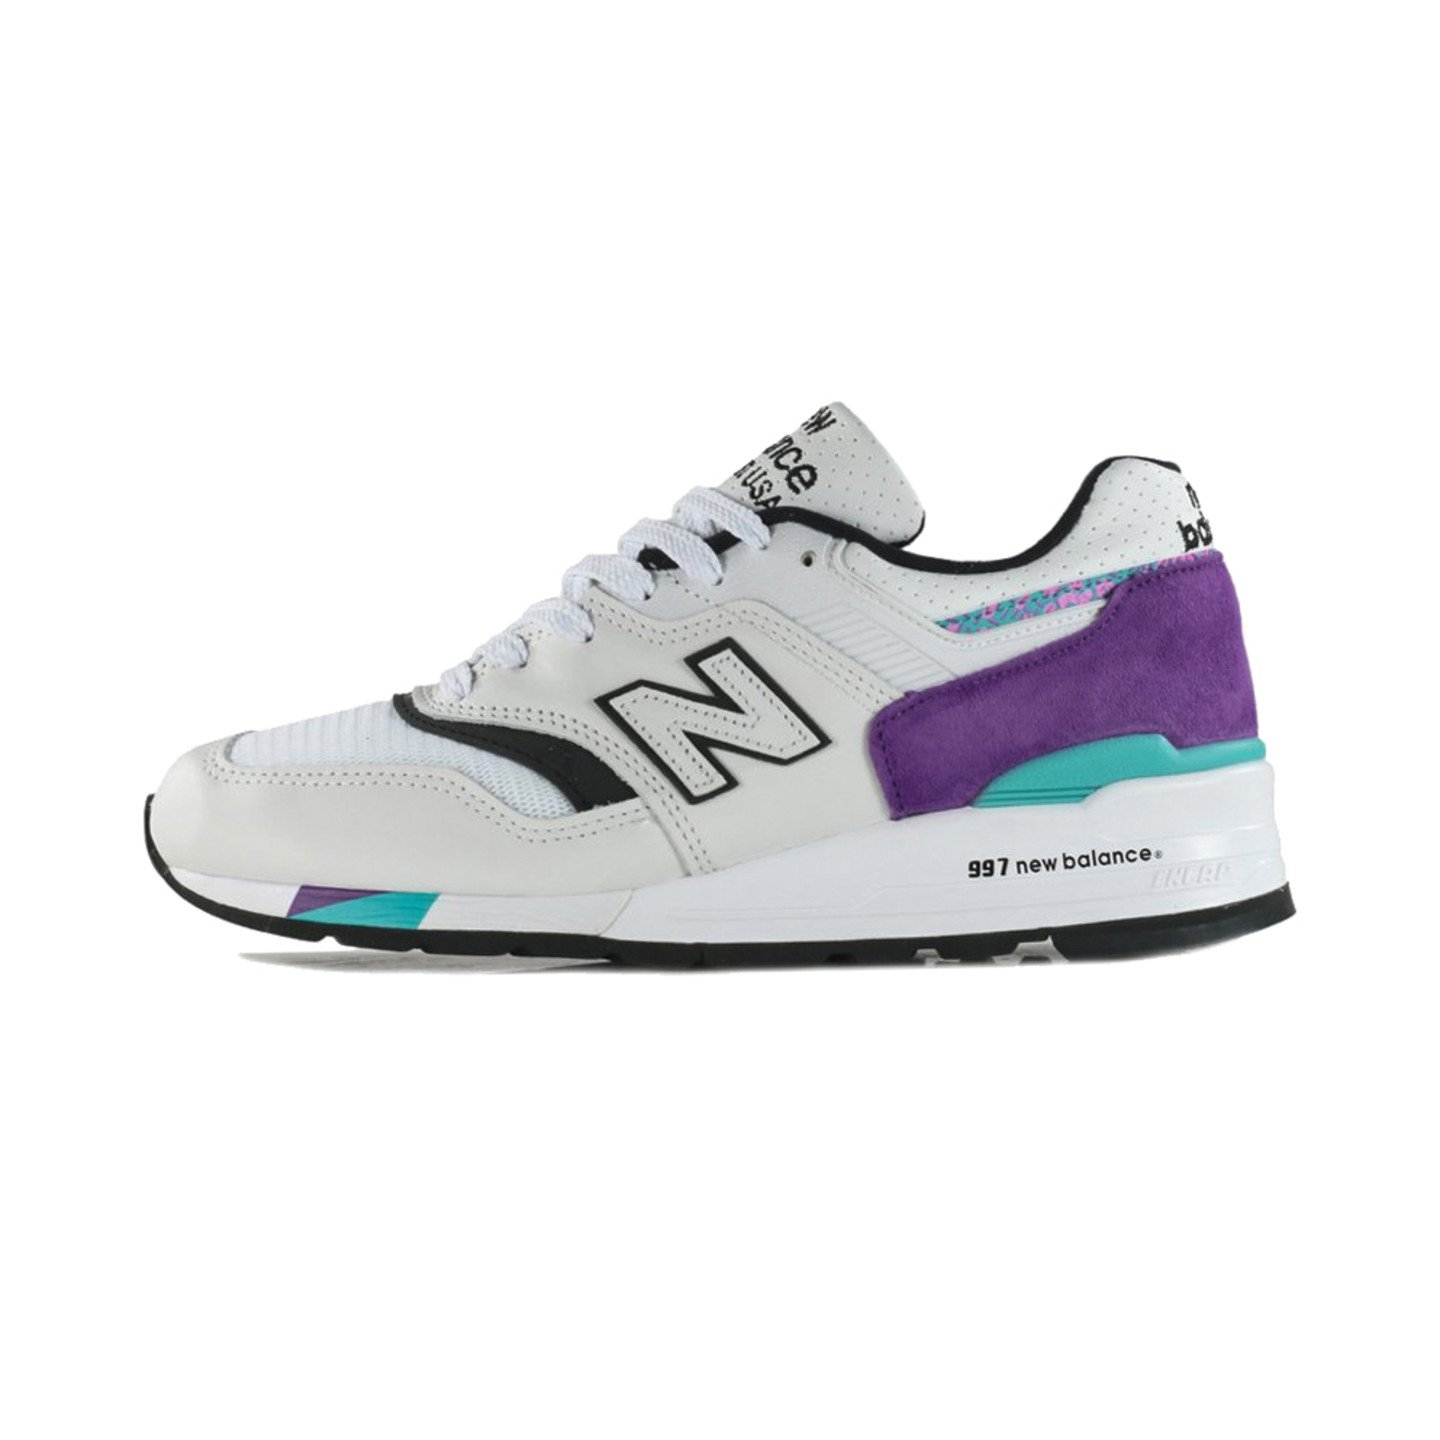 New Balance M997 - Made in USA White / Purple / Aqua M997WEA